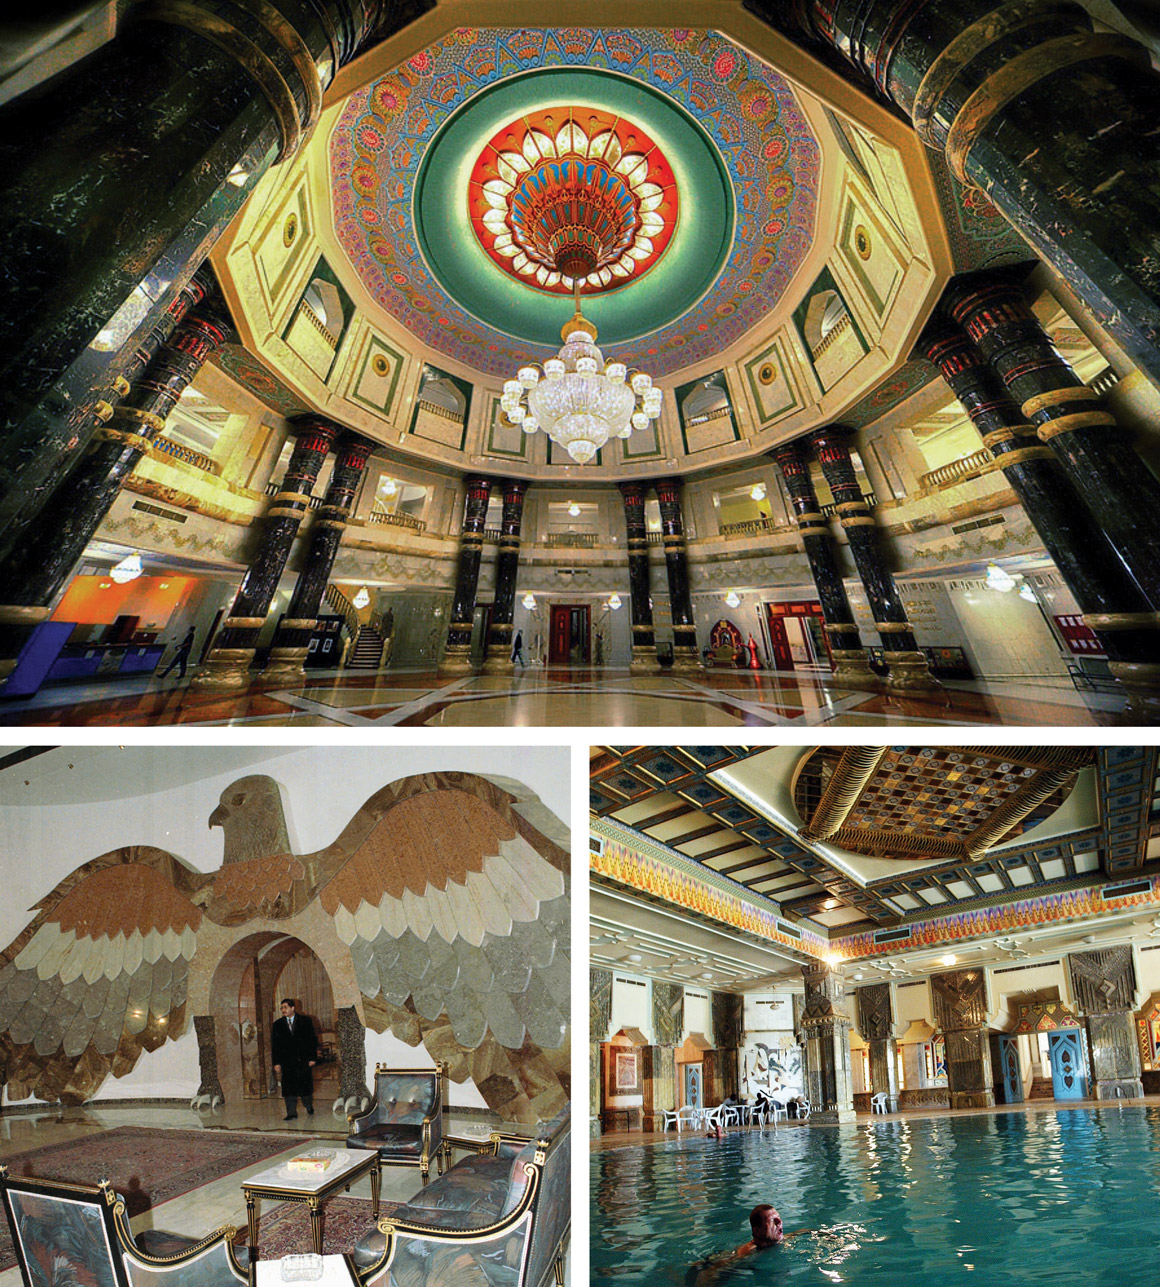 SADDAM HUSSEIN: The Iraqi president had dozens of palaces, villas, mansions and compounds around the country—many of which were converted into military outposts after the 2003 U.S. invasion. At top: the Al Faw palace in Baghdad; bottom left: a marble falcon in Baghdad; bottom right: a U.S. soldier swimming in a Tikrit palace in 2003, shortly after Hussein's ouster.